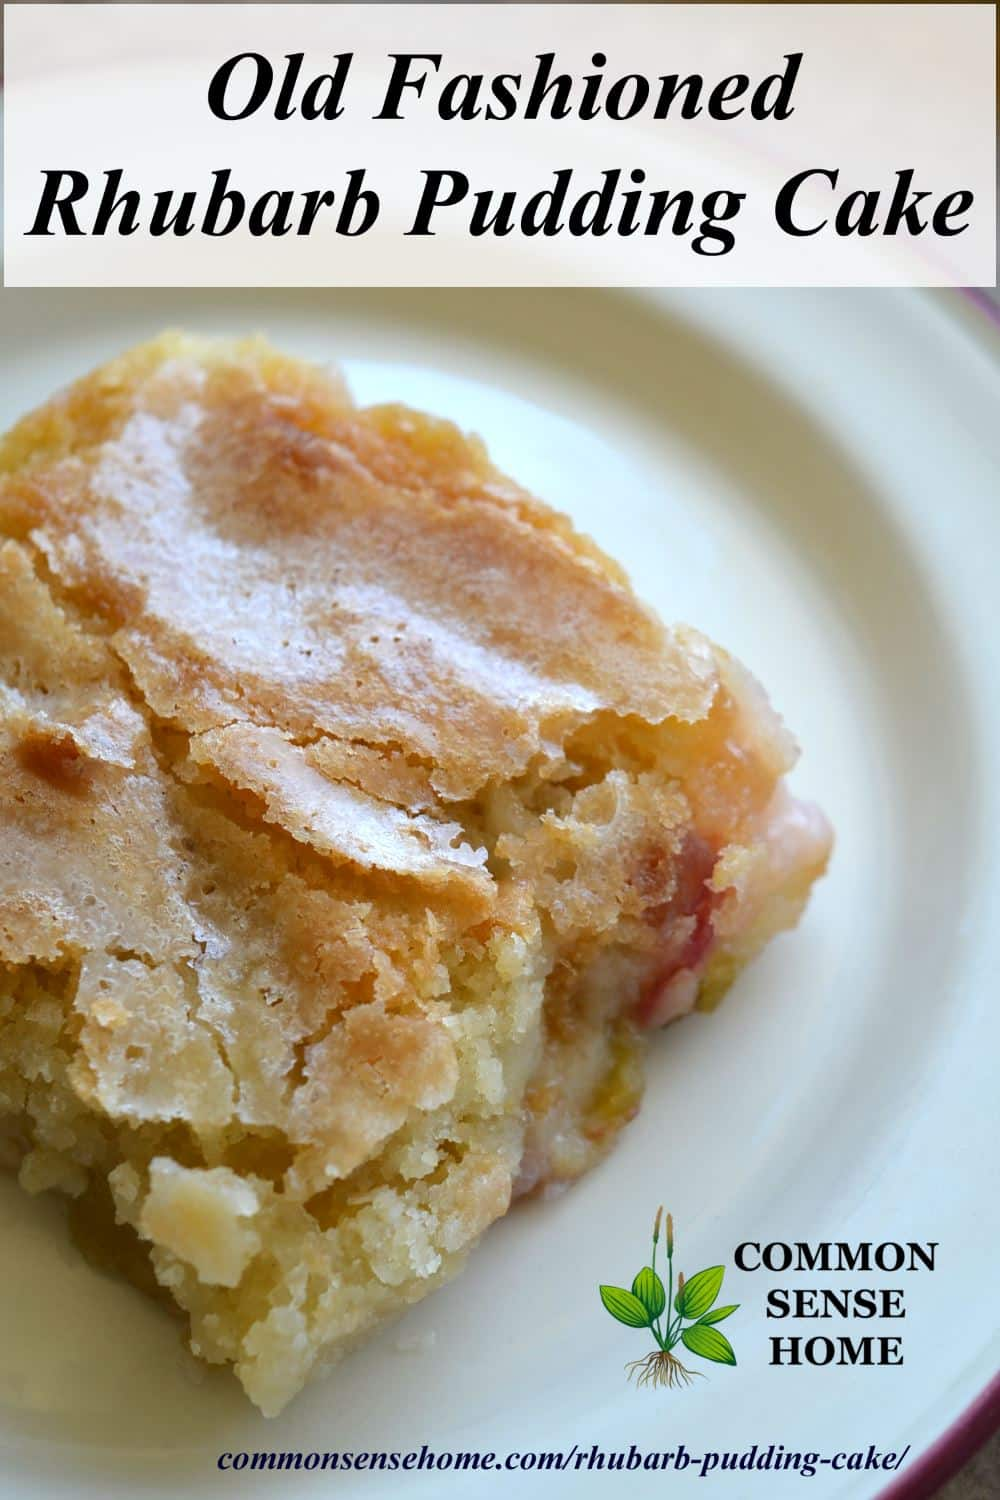 old fashioned rhubarb pudding cake on a white plate